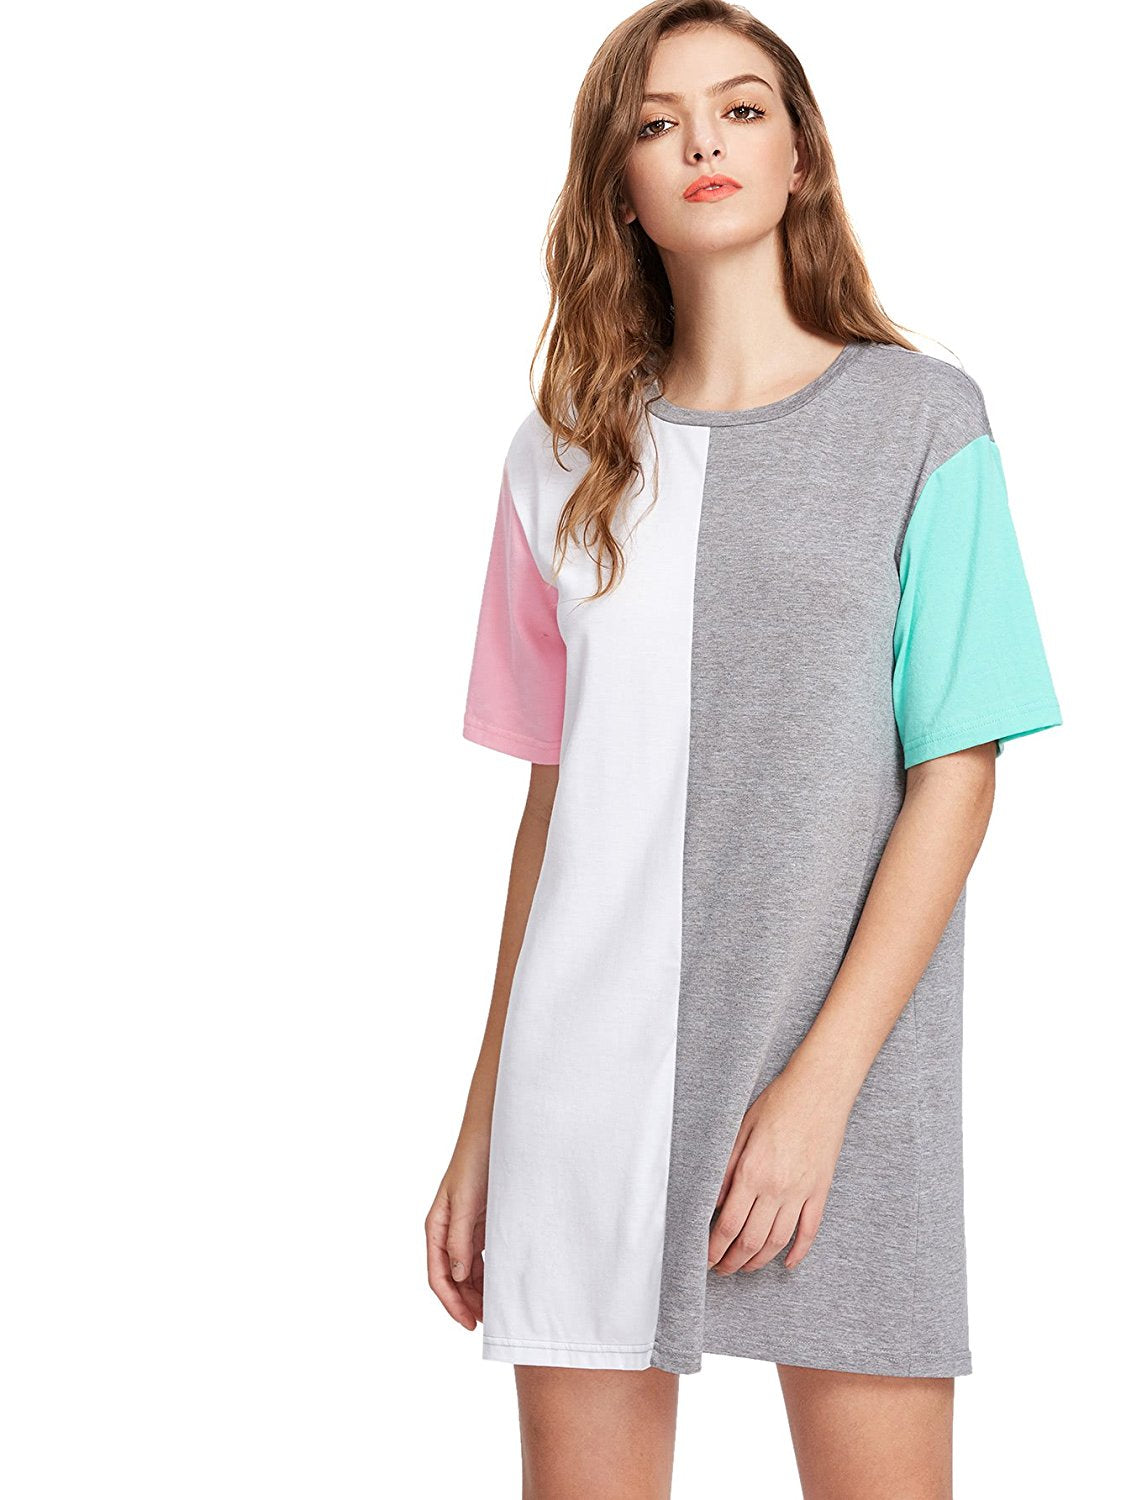 ddf9e2db3ed57 ... Romwe Women's Color Block Cut and Sew Round Neck Tee Shirt Short Dress  - The Speech ...